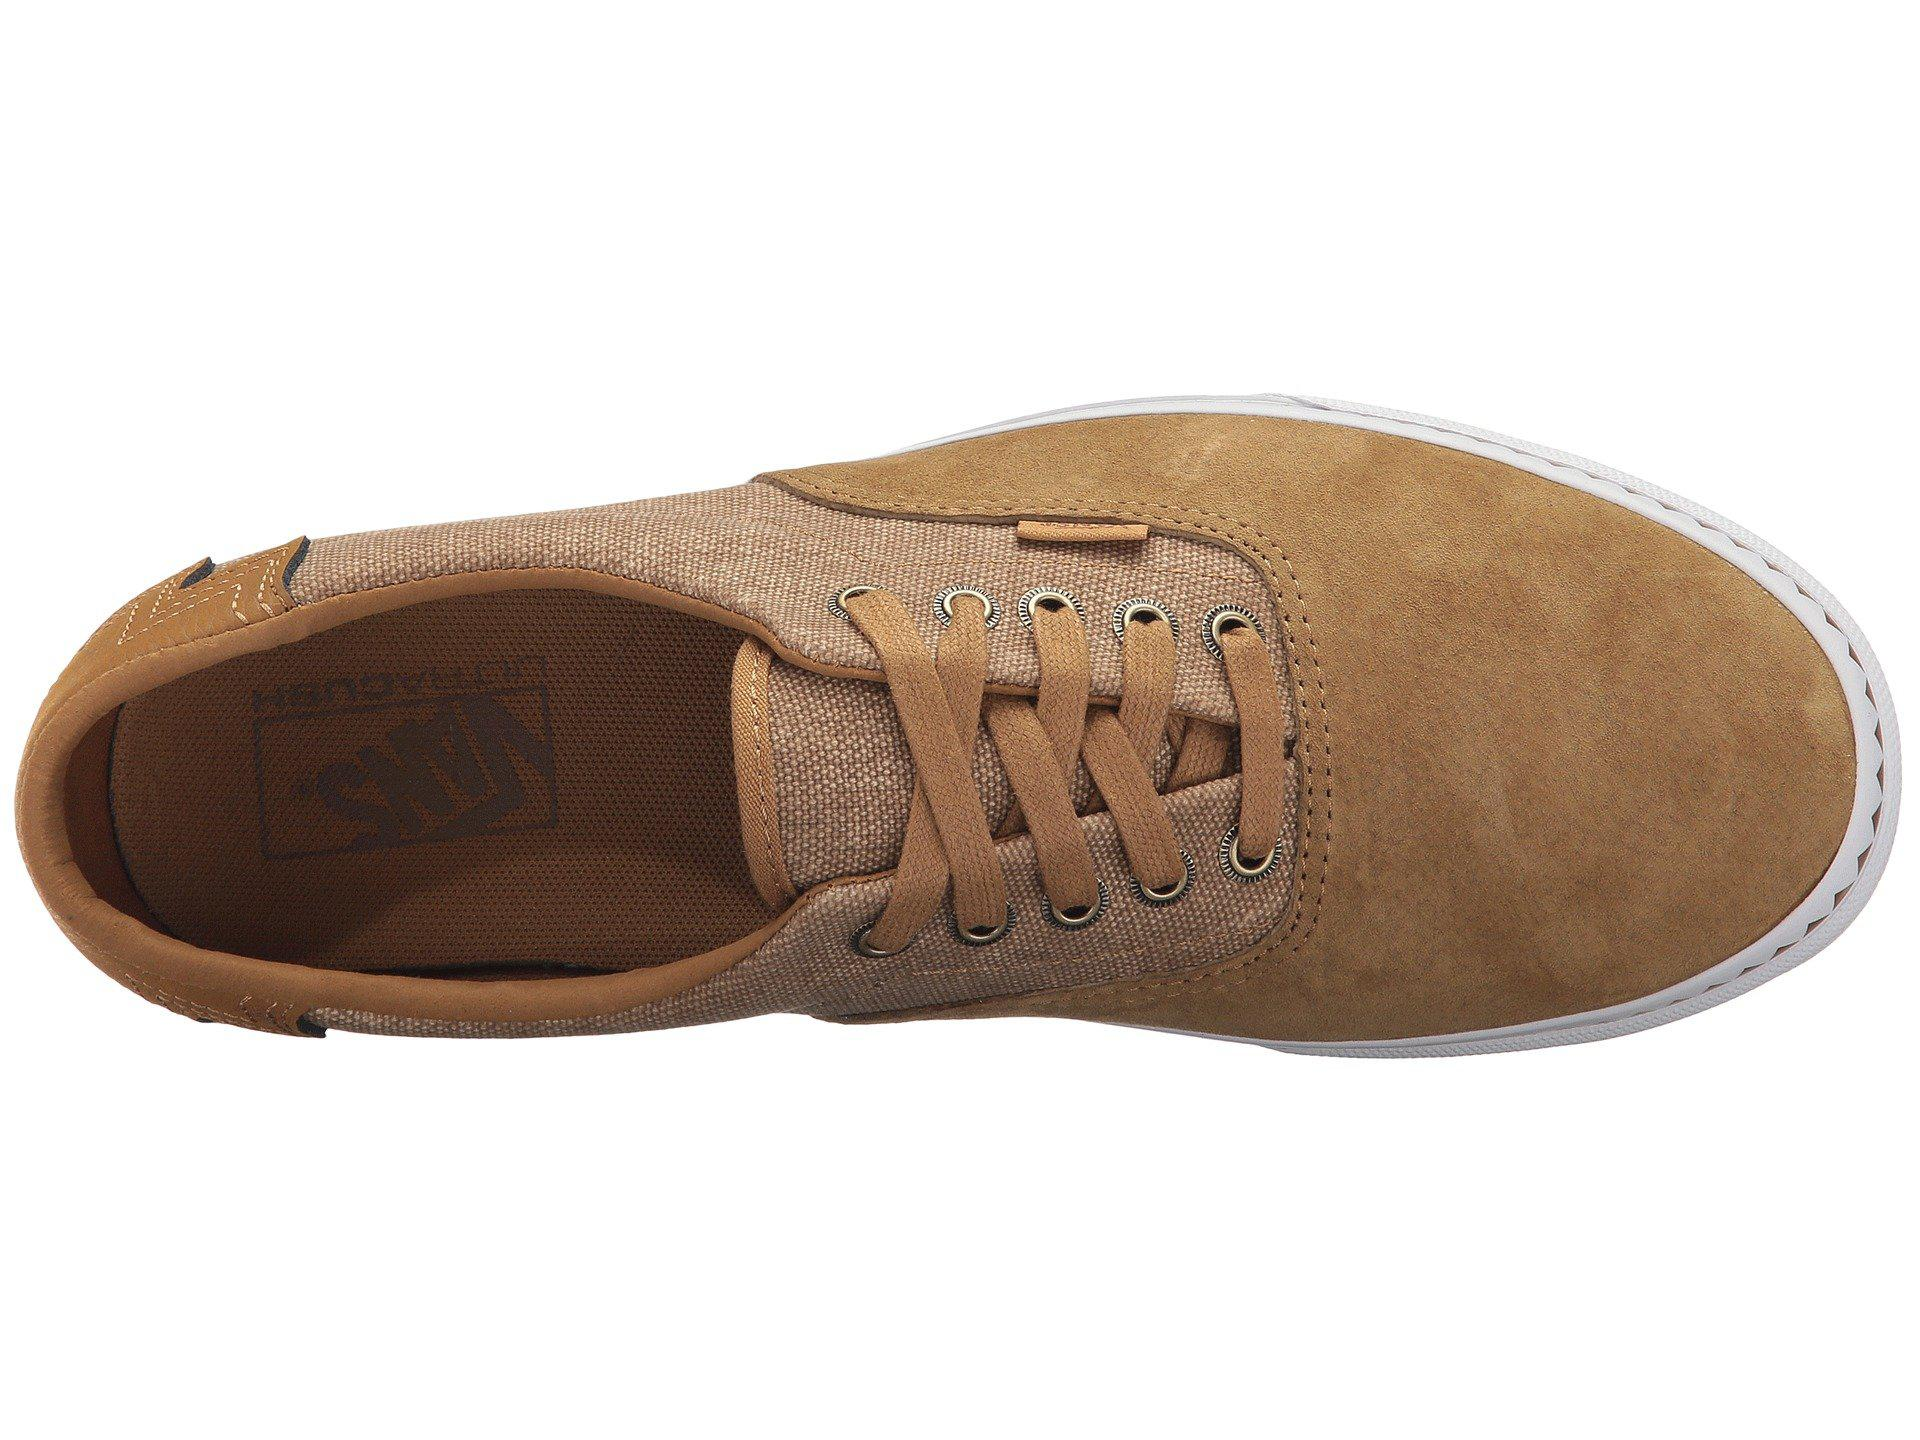 b2751974c6 Lyst - Vans Era 59 Native Dx for Men